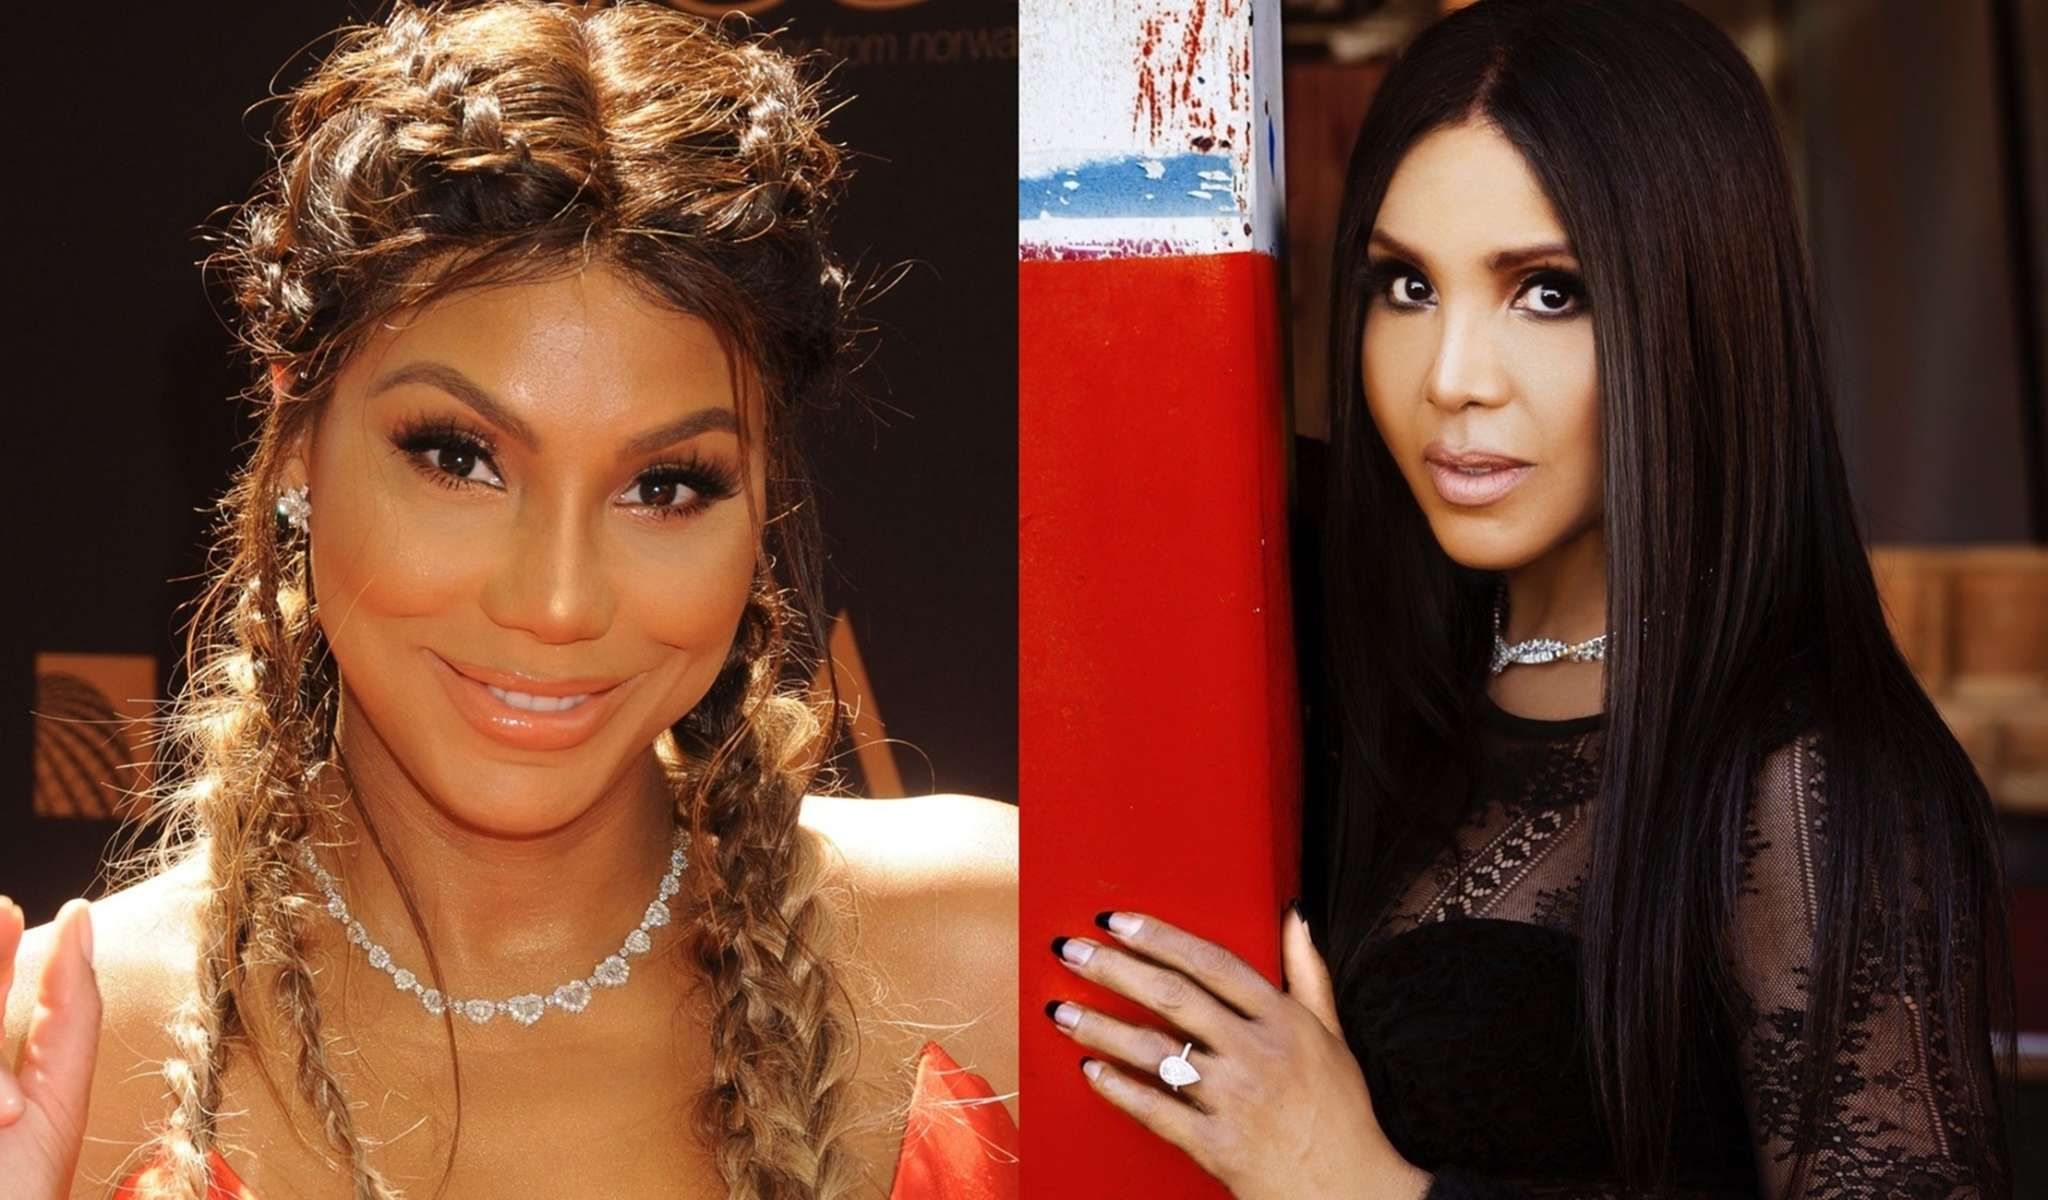 Tamar Braxton Posts A Photo With Her Sister, Toni Braxton Sleeping And Fans, Including Porsha Williams, Are Here For It